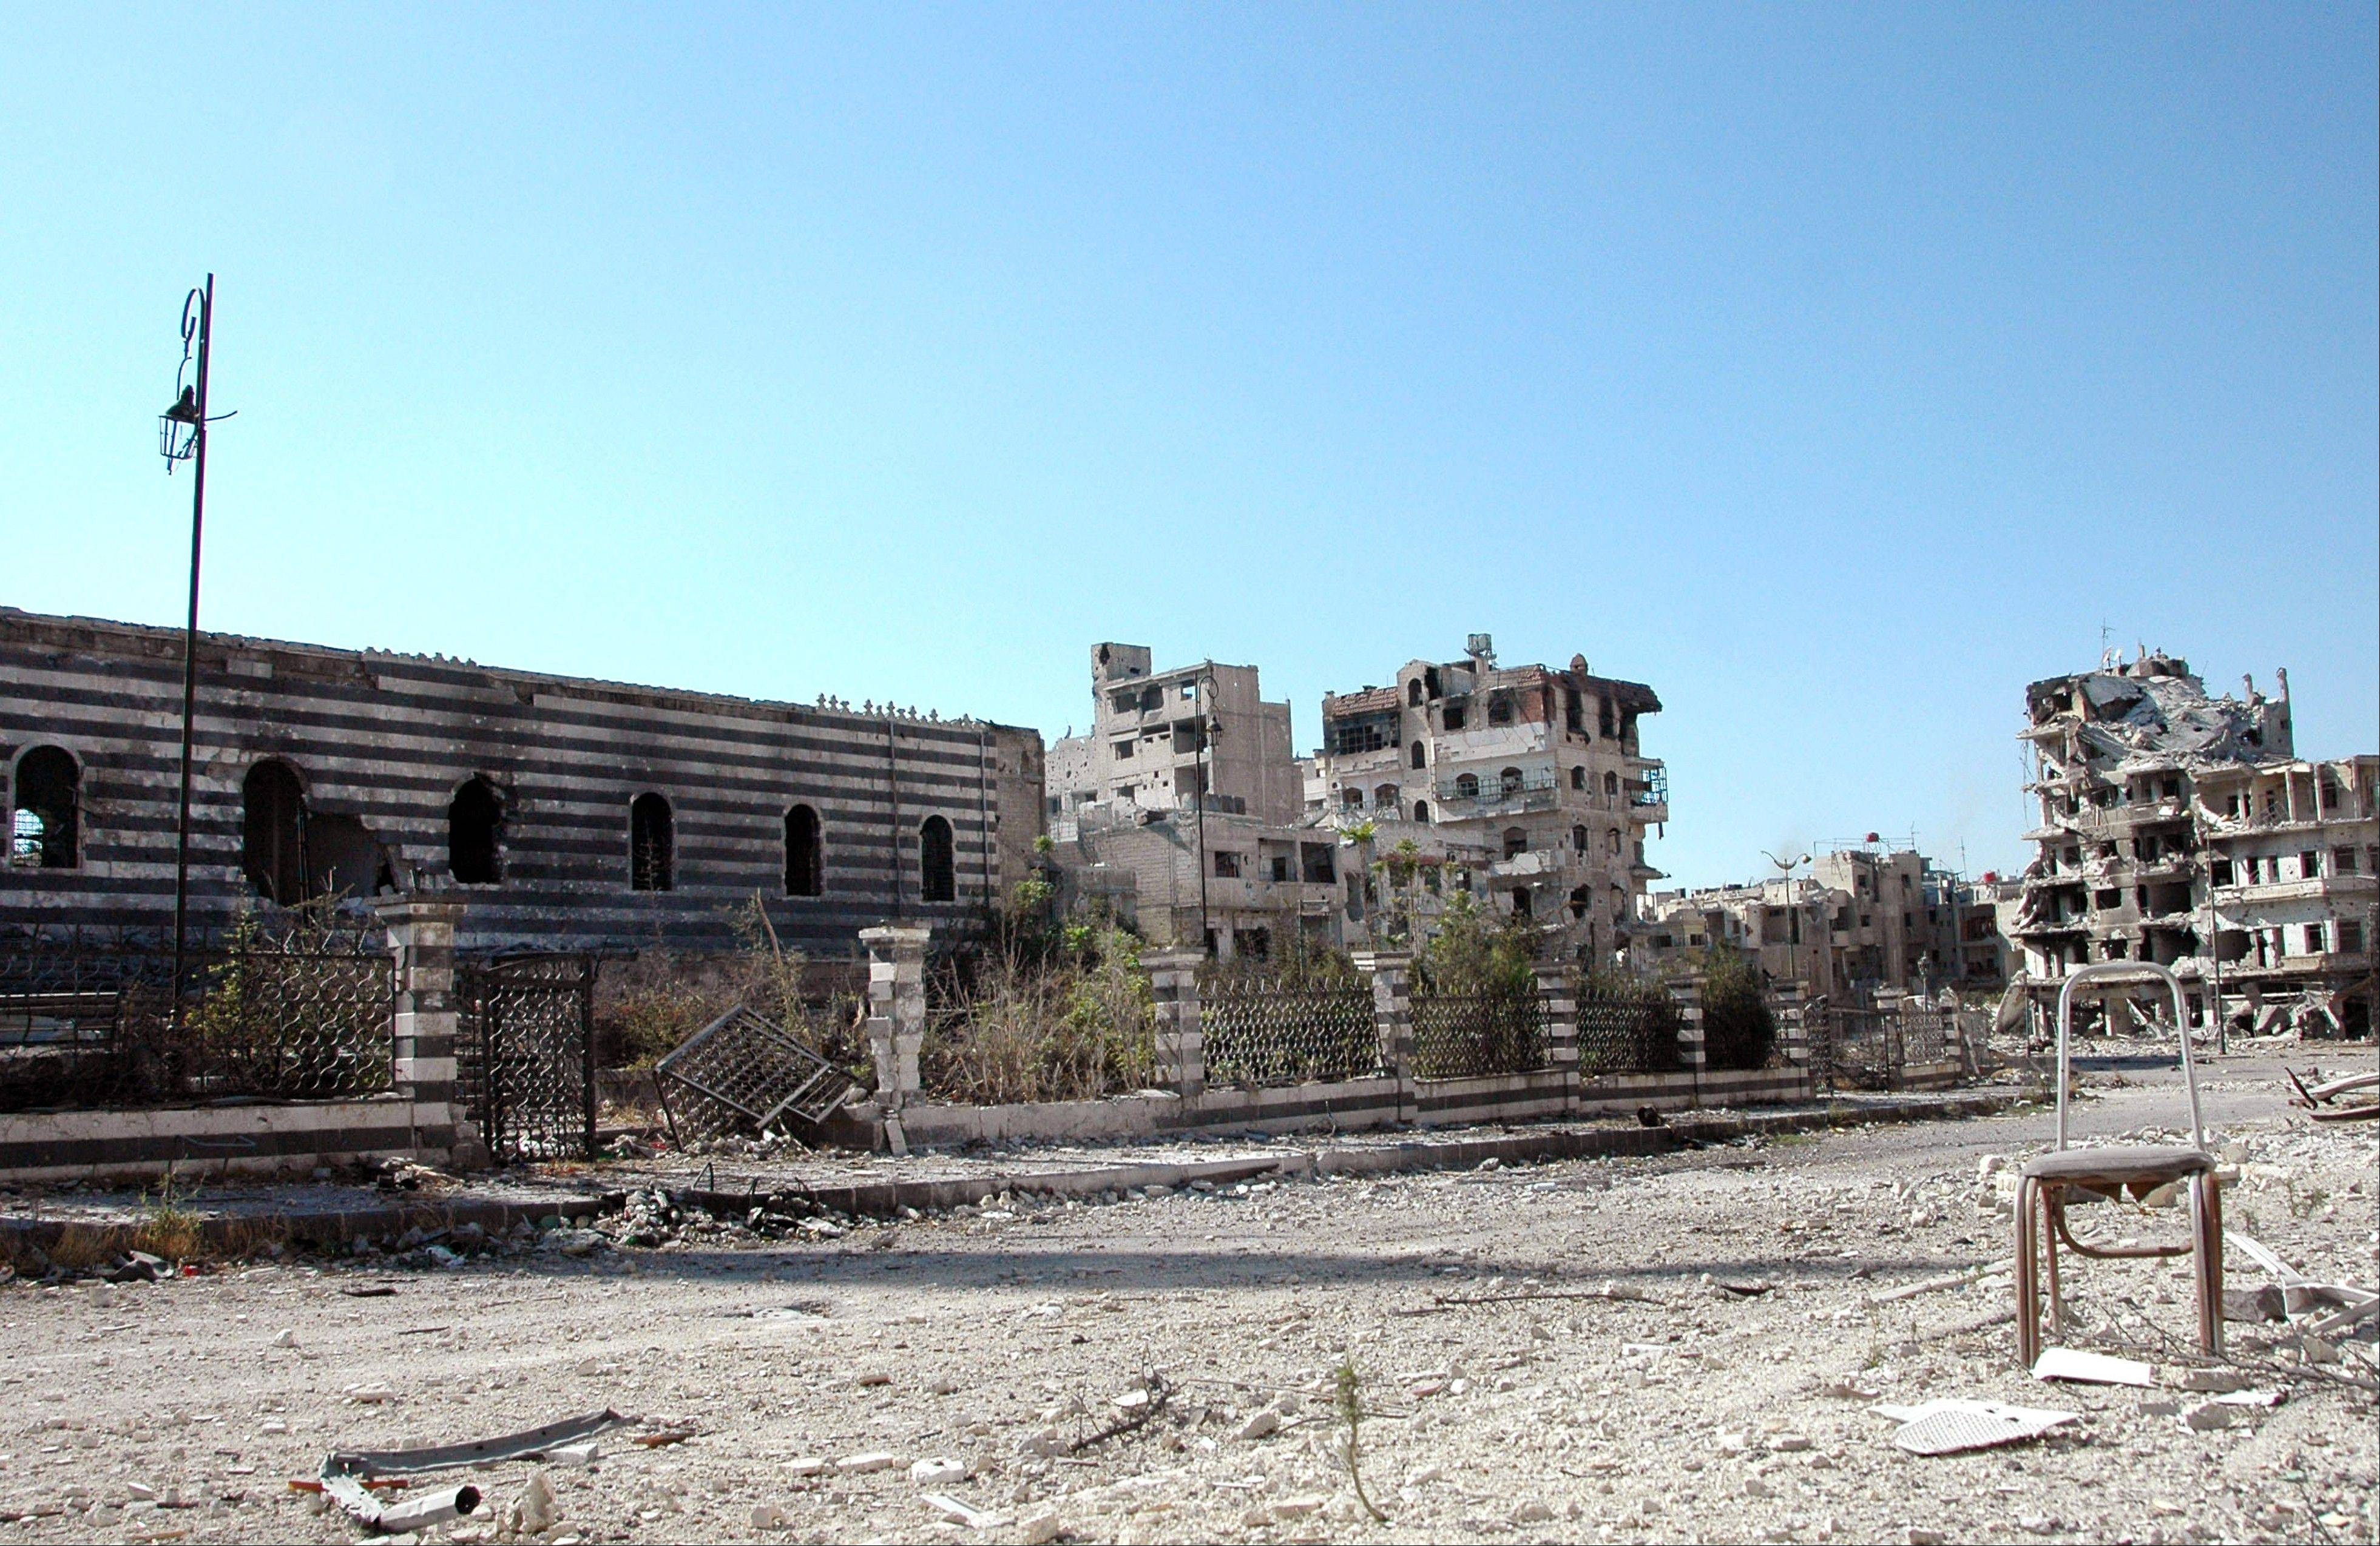 Syrian government forces captured a historic mosque in the central city of Homs on Saturday, expelling rebel forces who had been in control of the 13th-century landmark for more than a year and dealing a symbolic blow to opposition forces.